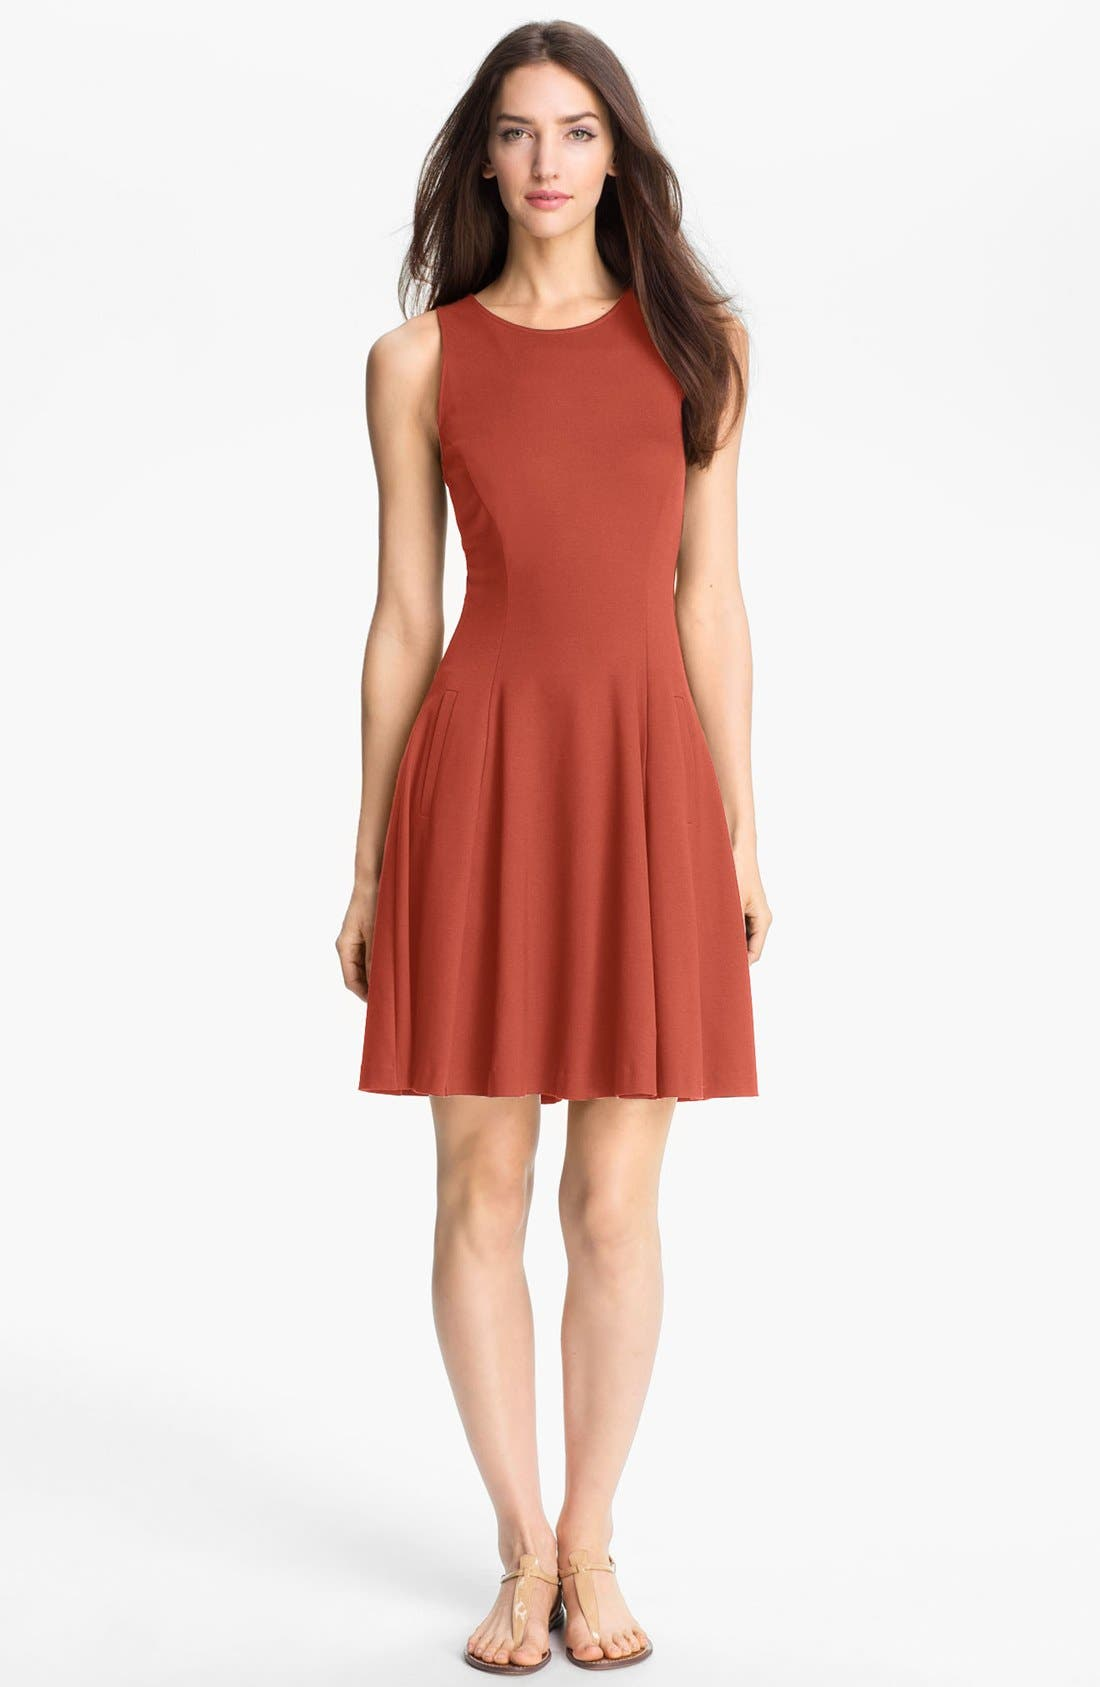 Alternate Image 1 Selected - Theory 'Panoa' Stretch Fit & Flare Dress